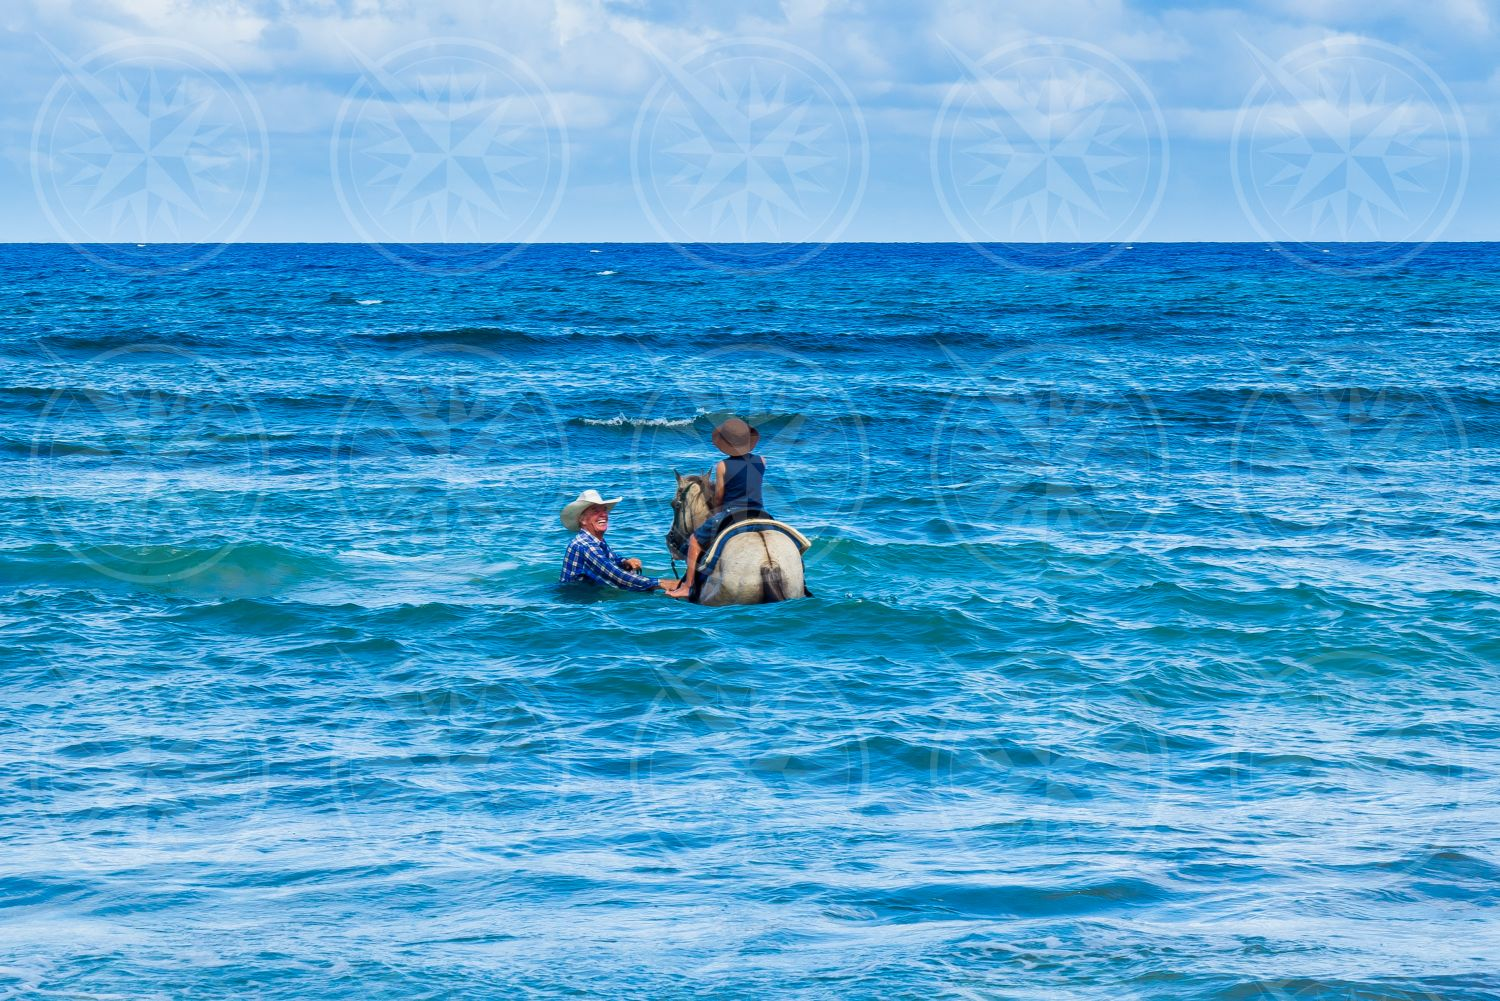 Horse in the water with boy